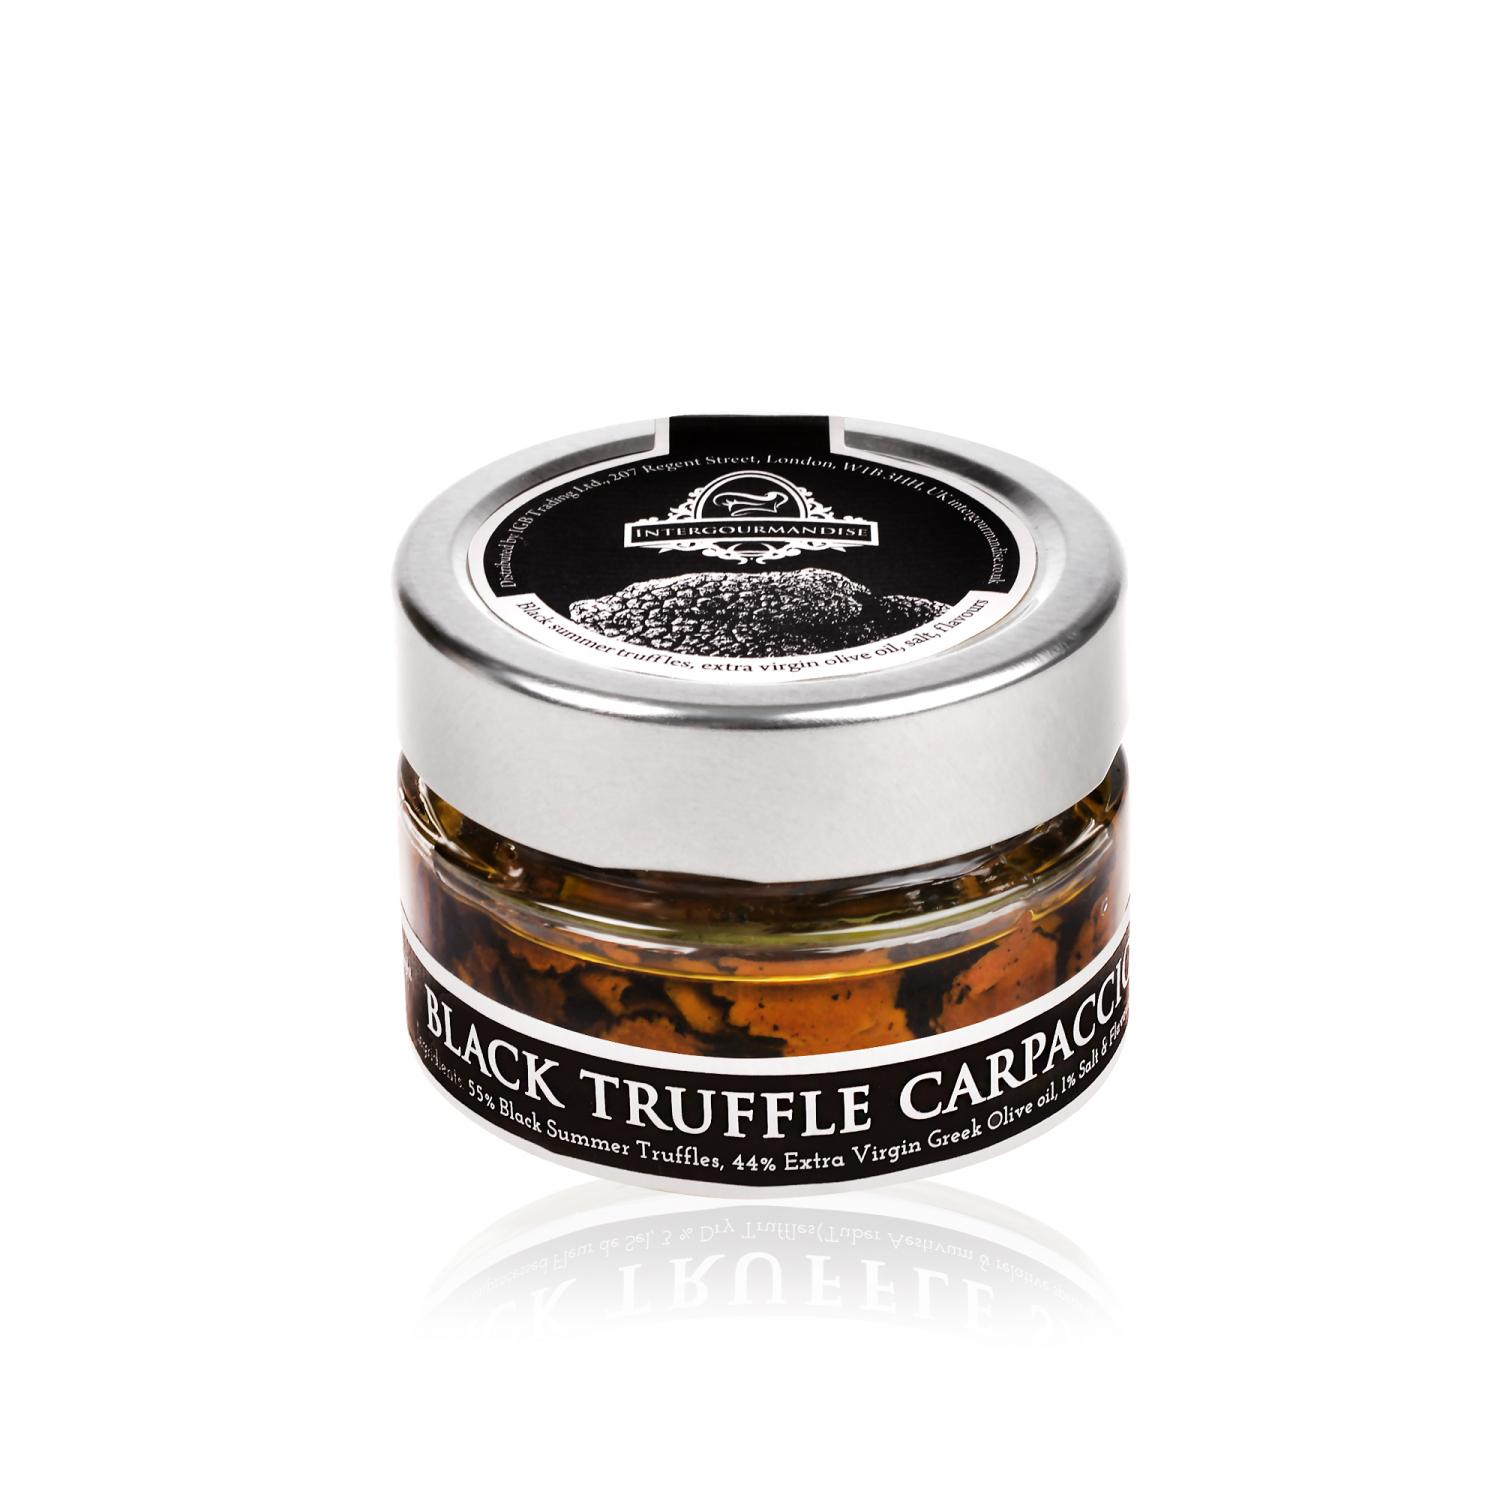 black truffle carpaccio 40 gr / 1_4 oz